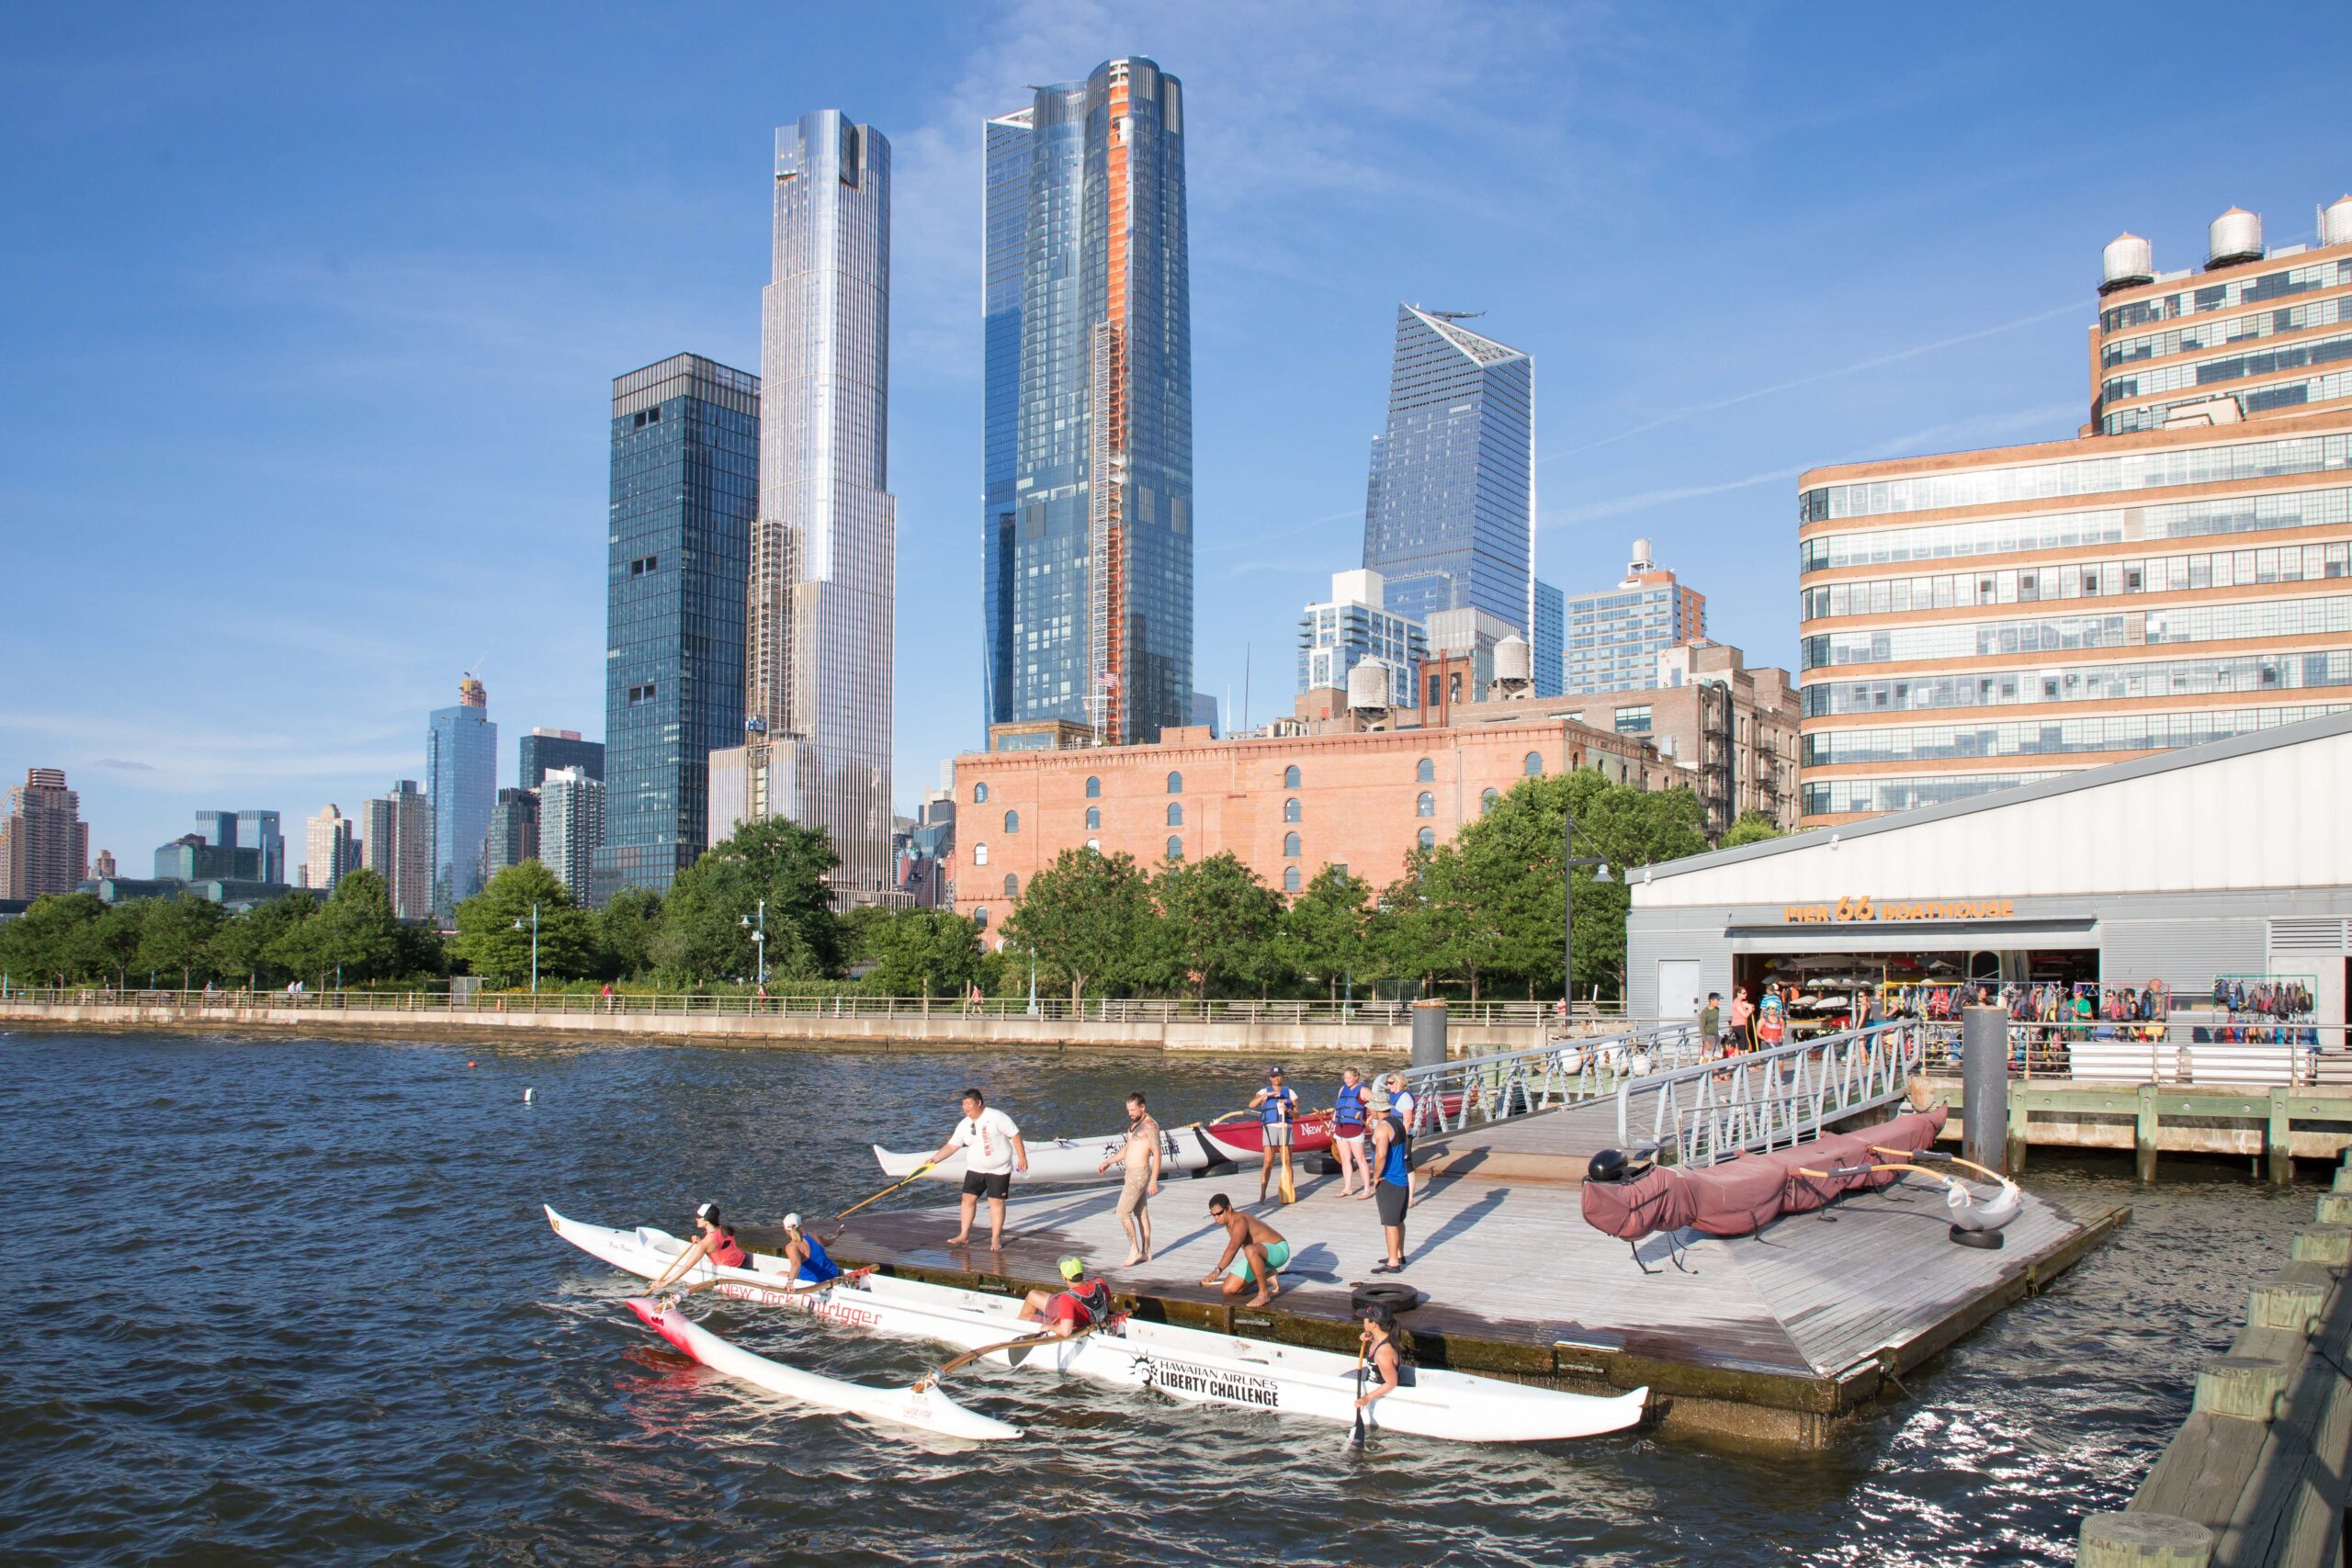 The Pier 66 Boathouse provides a launching pad for numerous kayakers on the Hudson River